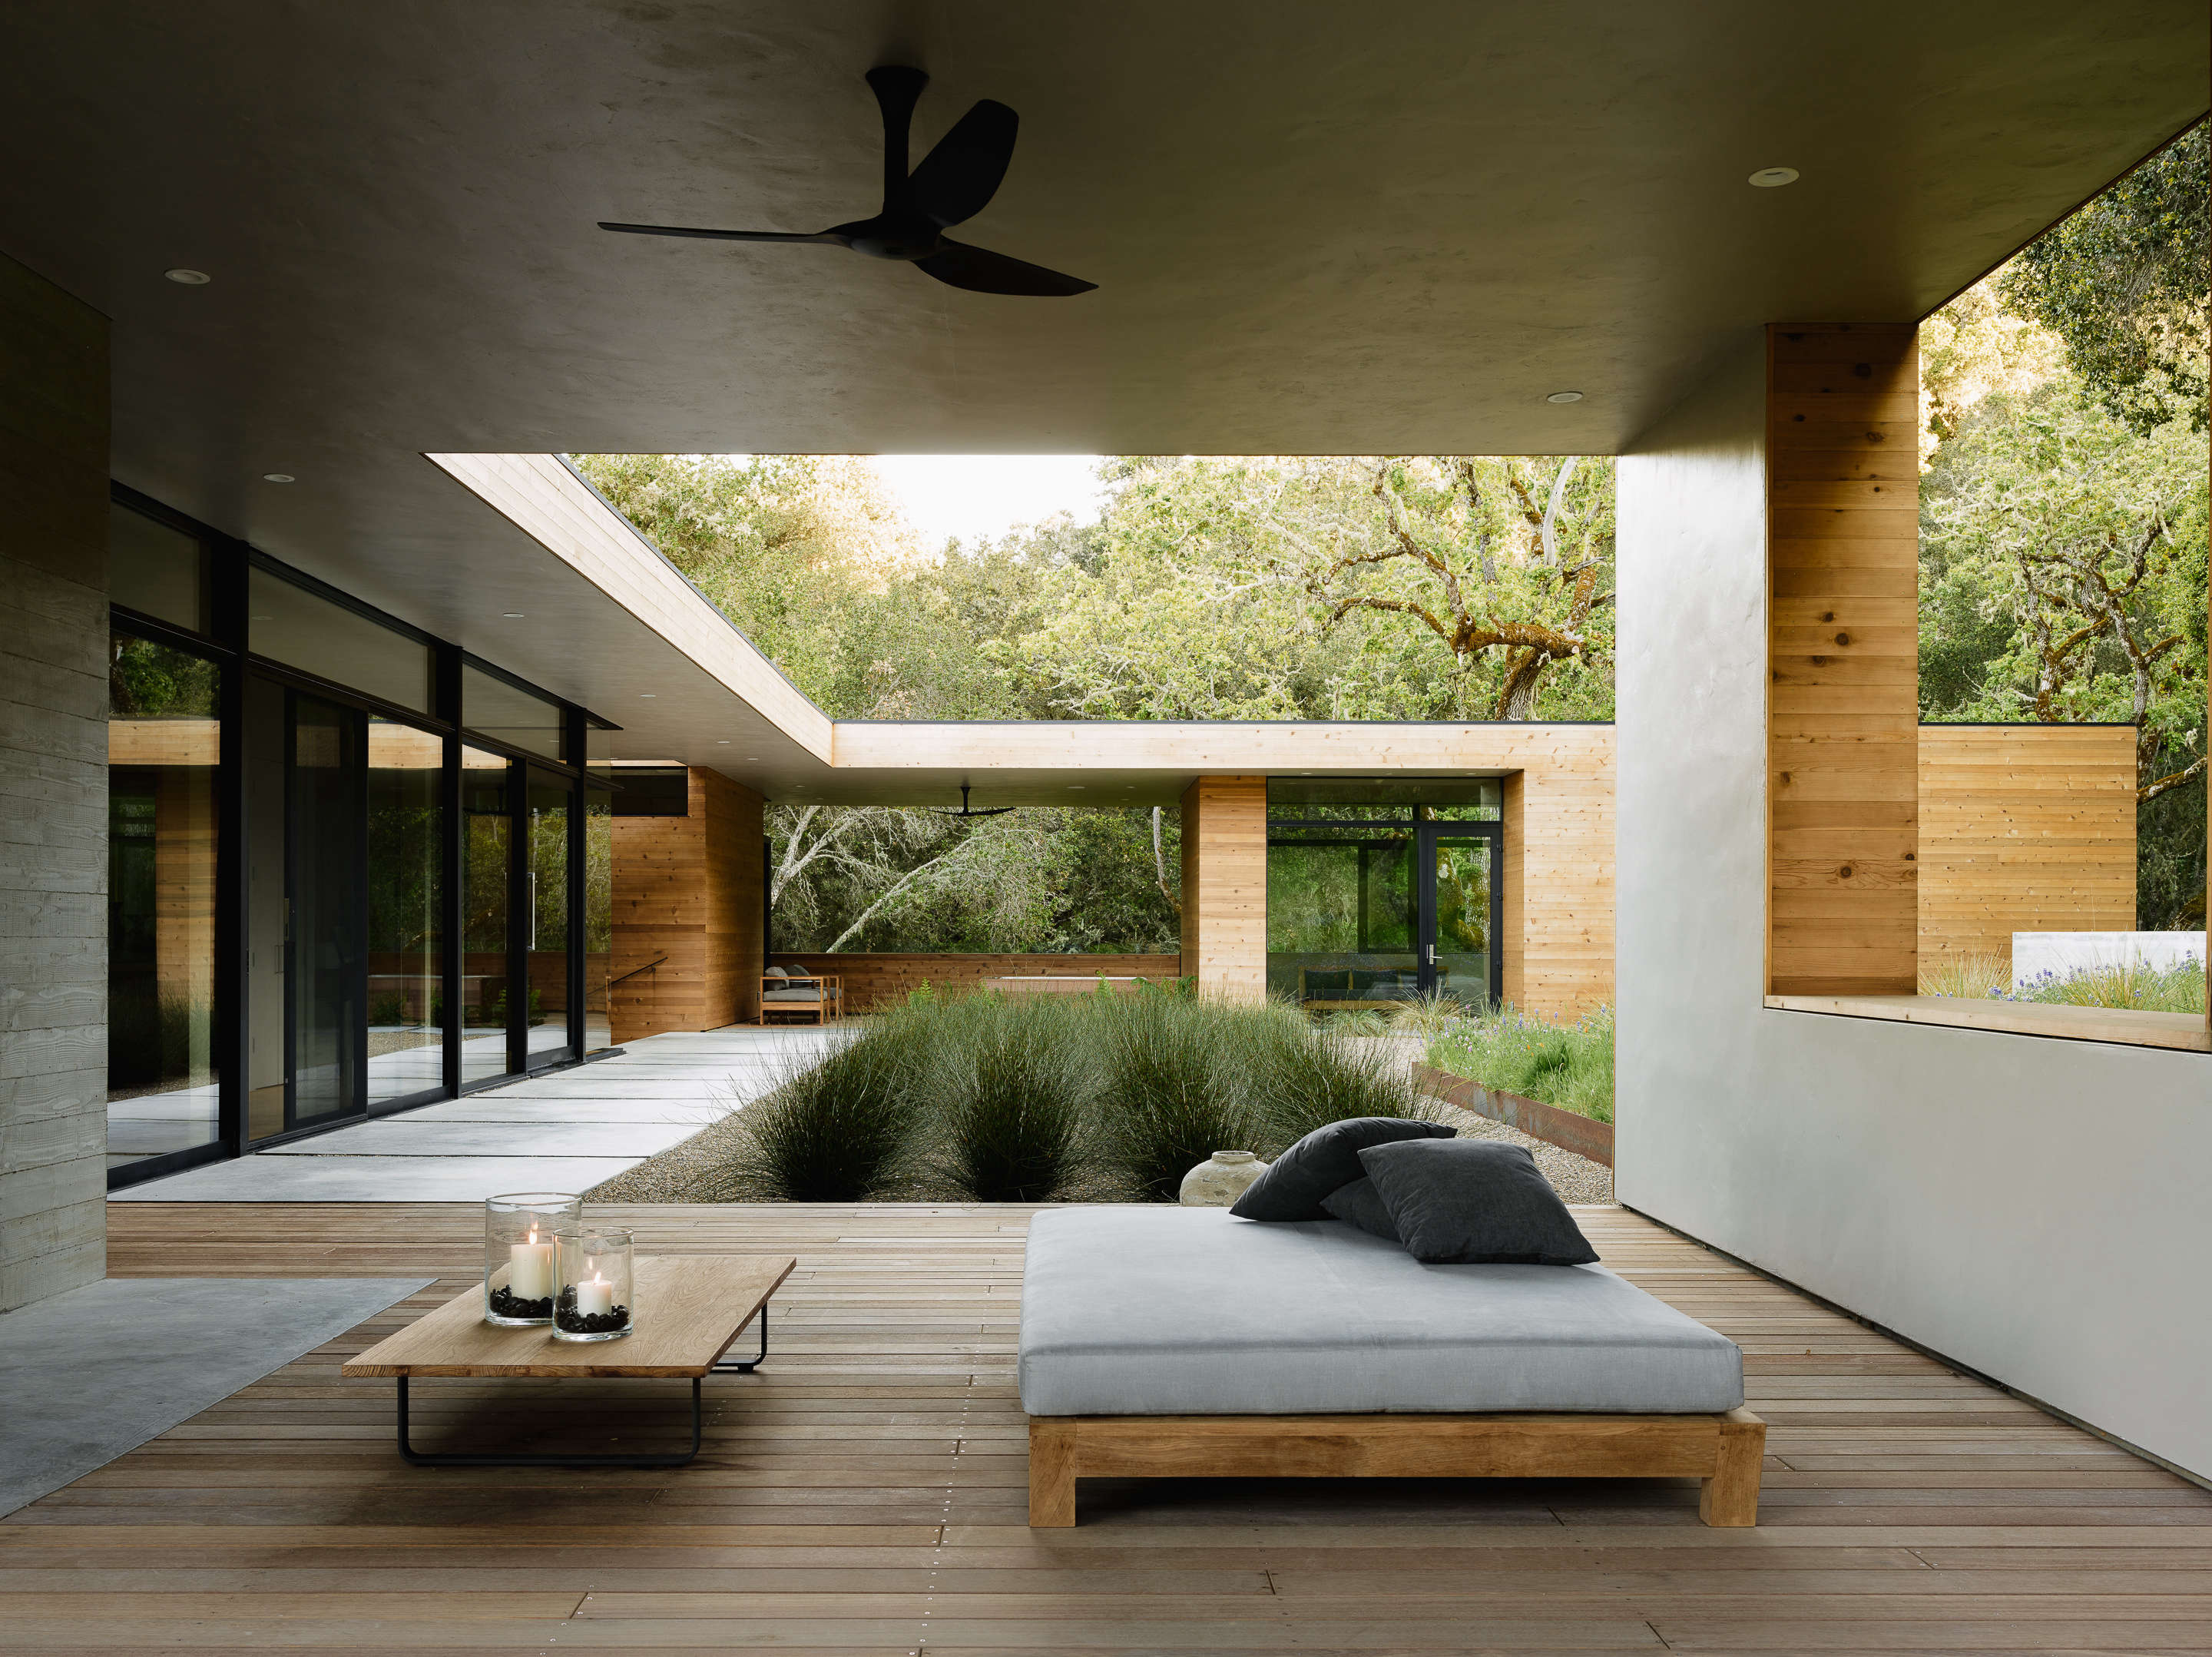 carmel valley outdoor room daybed 9